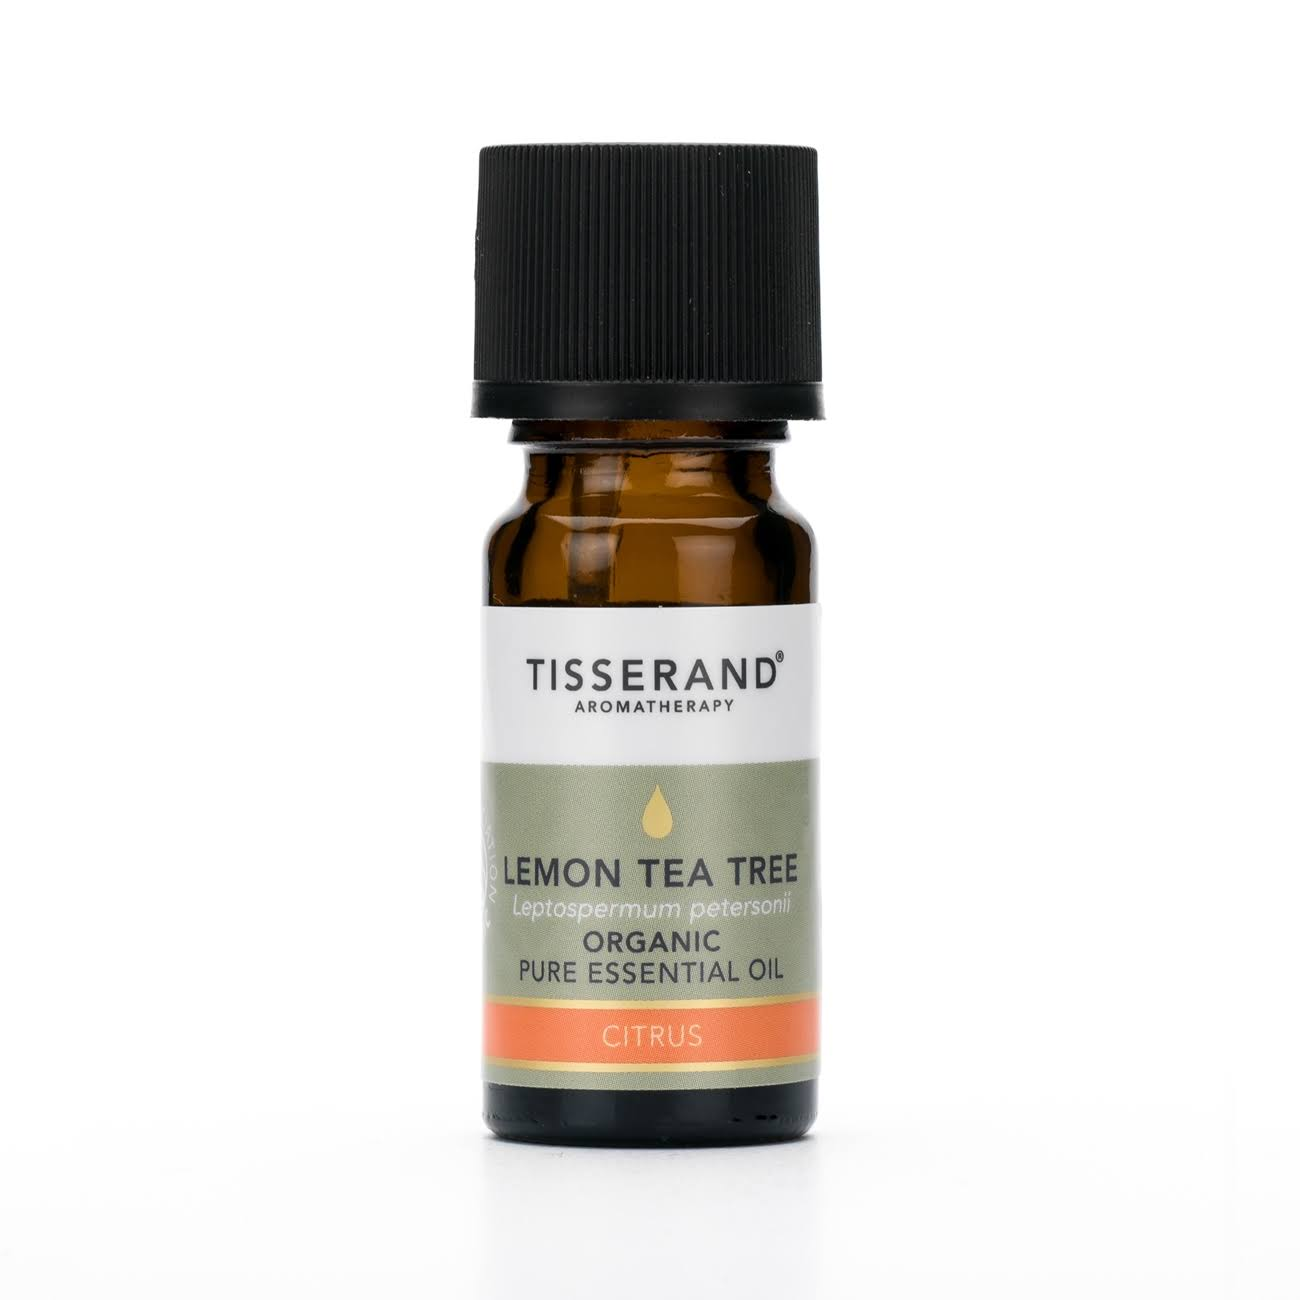 Tisserand Lemon Tea-Tree Organic Essential Oil